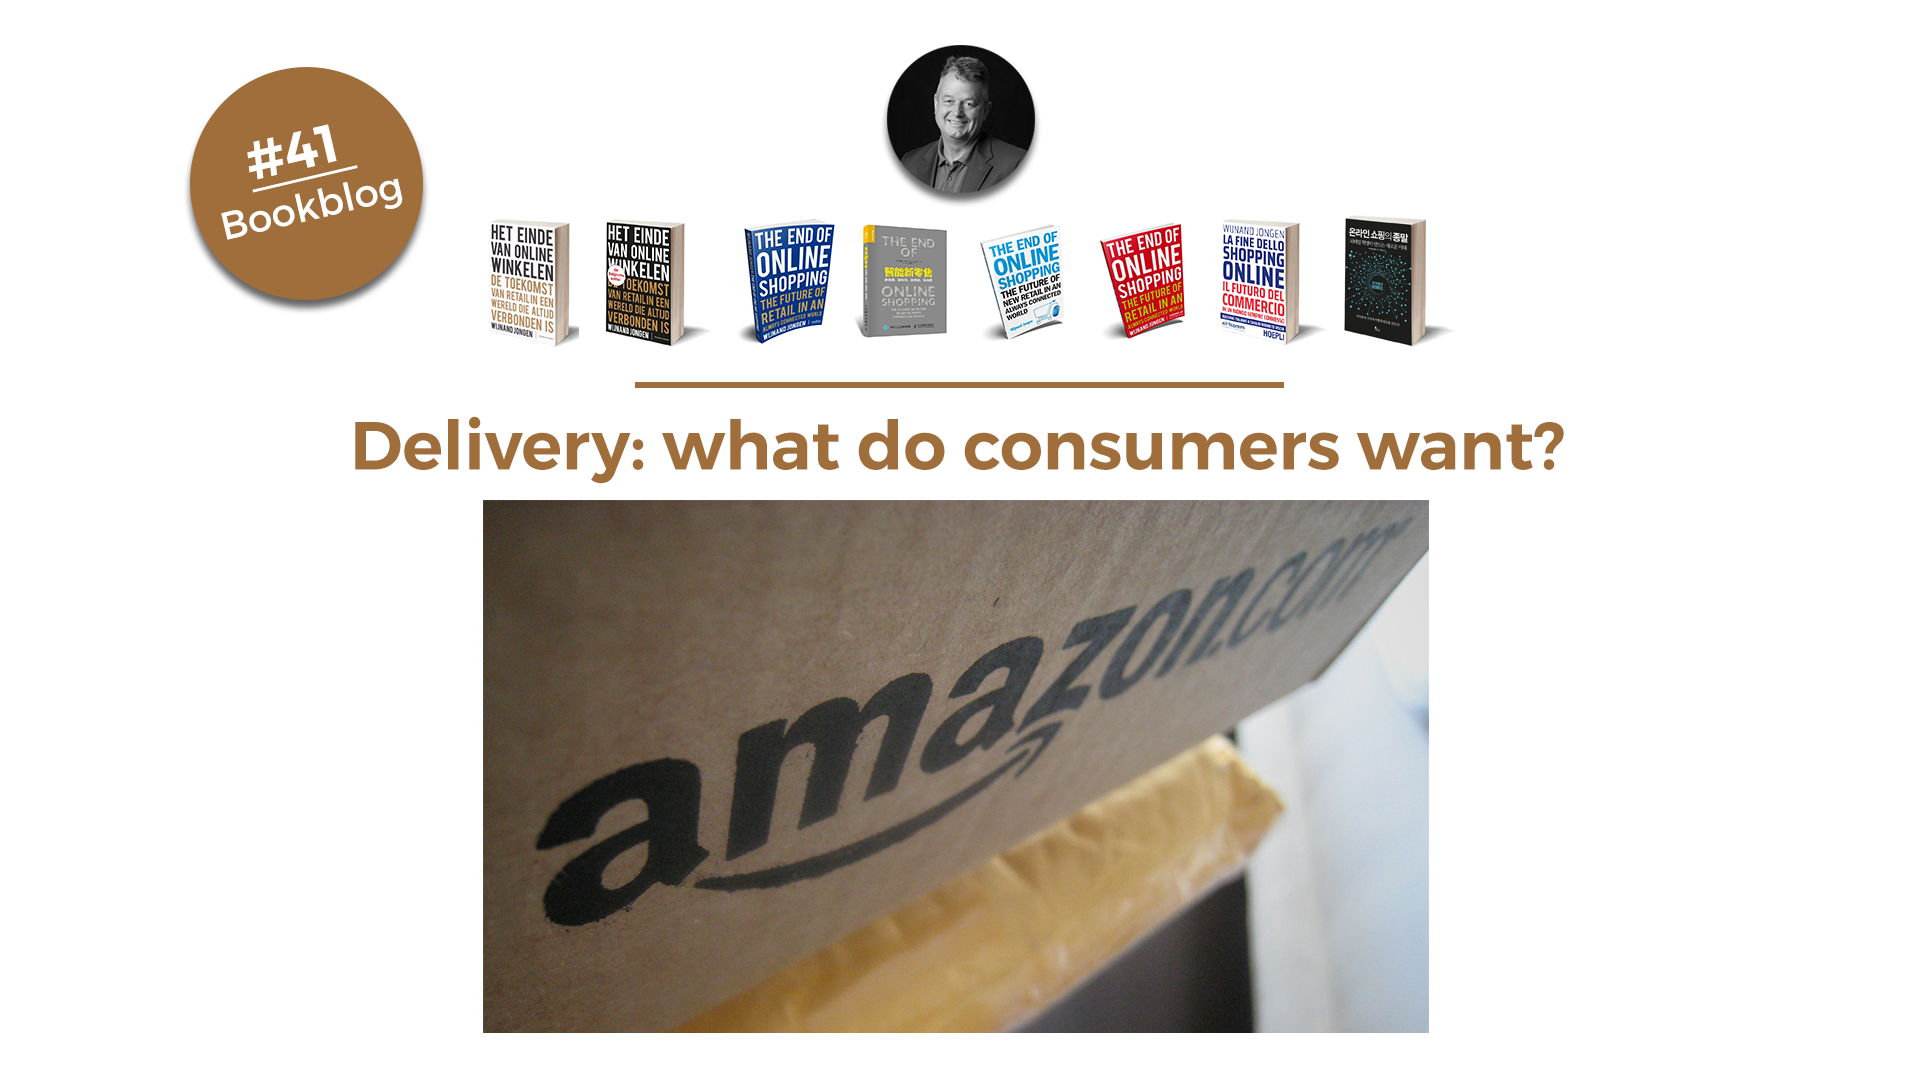 Delivery: what do consumers want?